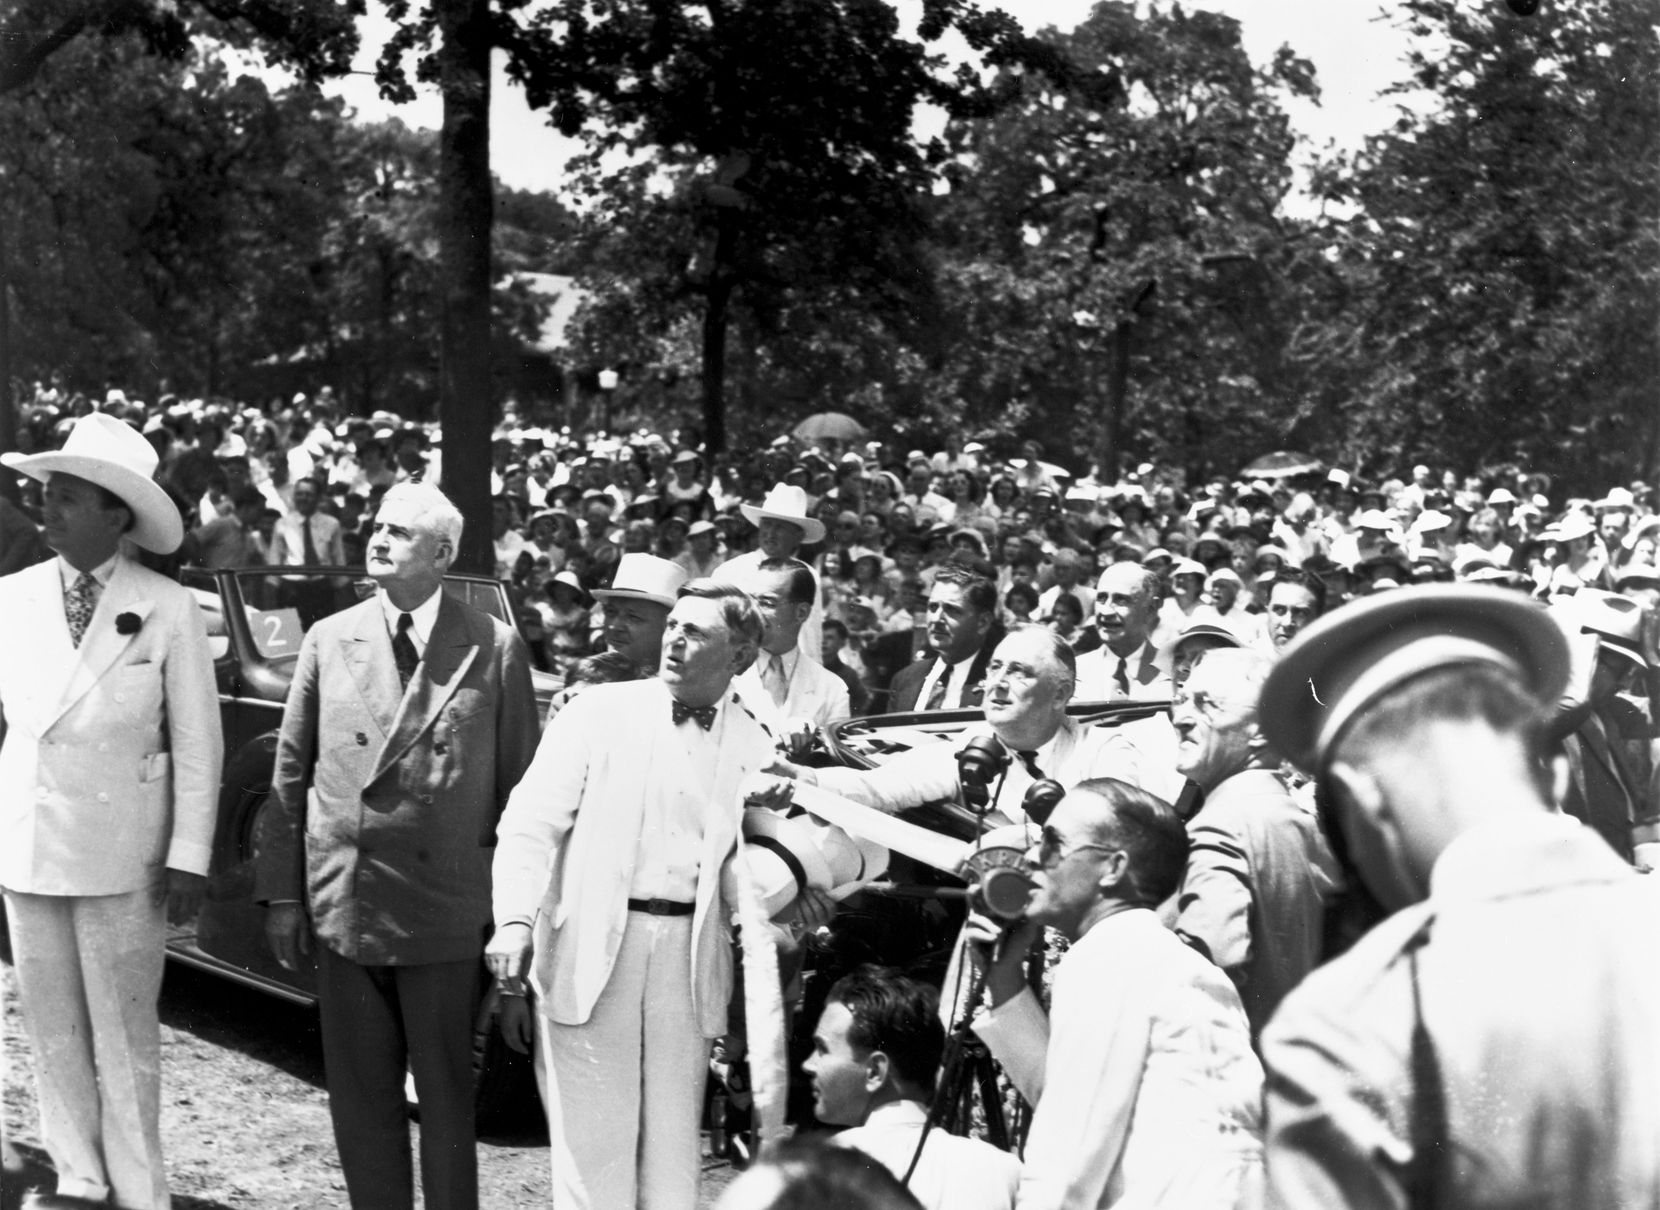 President Franklin D. Roosevelt (seated in car, middle right) pulls a ribbon to unveil the statue of Robert E. Lee in front of a crowd at Lee Park in Dallas, Texas, on June 12, 1936.